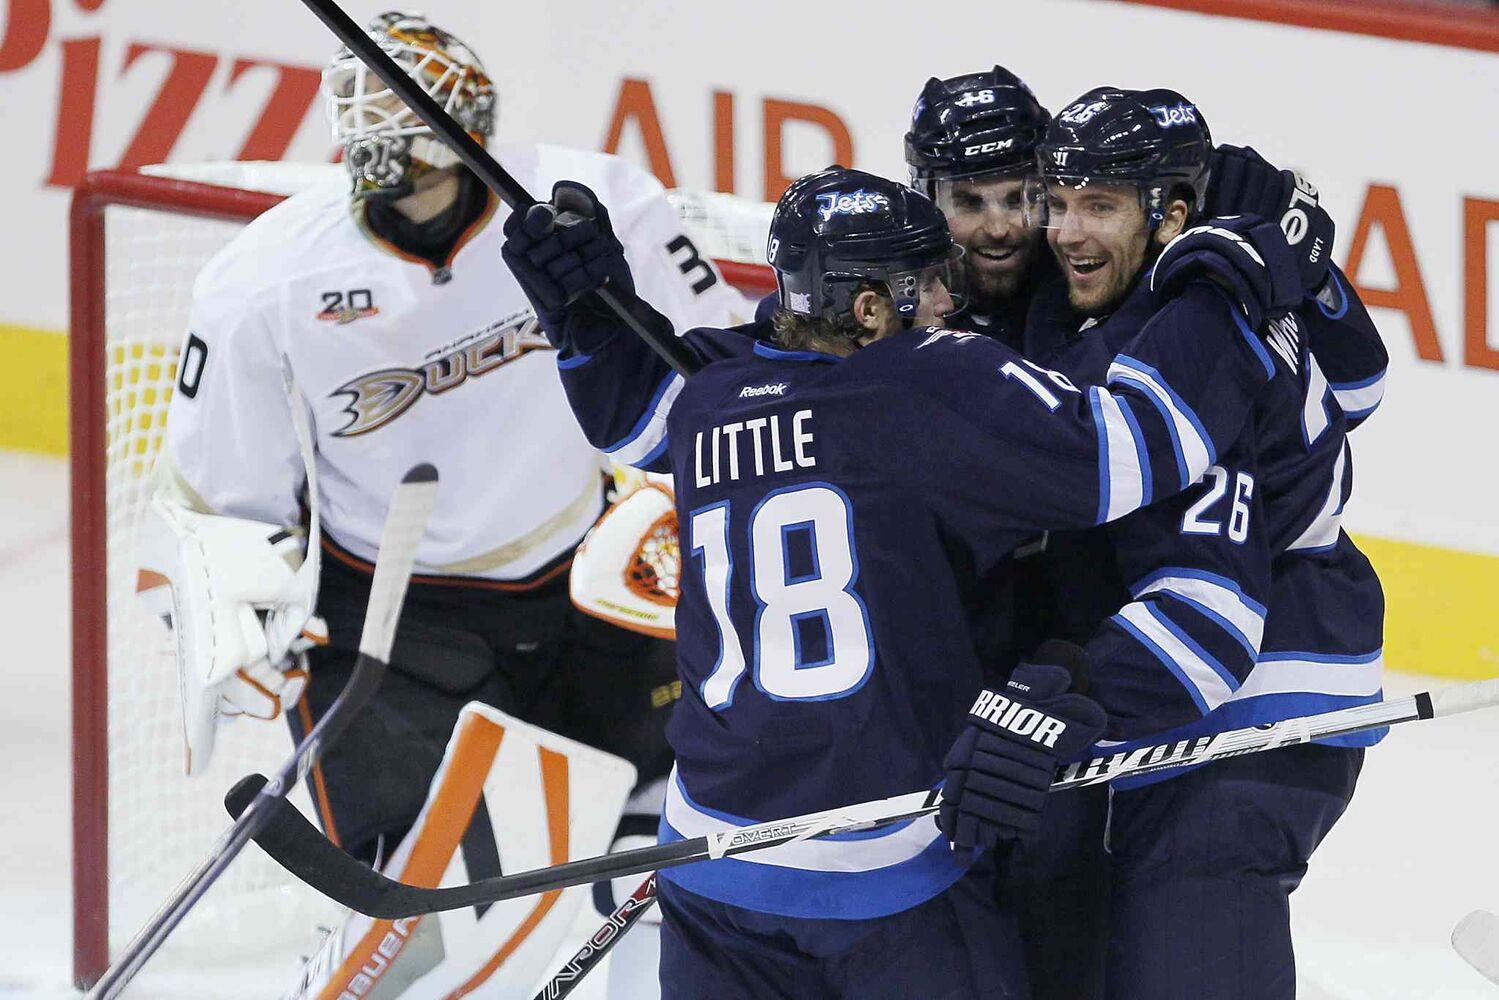 Winnipeg Jets' Bryan Little, Andrew Ladd and Blake Wheeler celebrate Ladd's goal against Anaheim Ducks' goaltender Viktor Fasth during the first period.